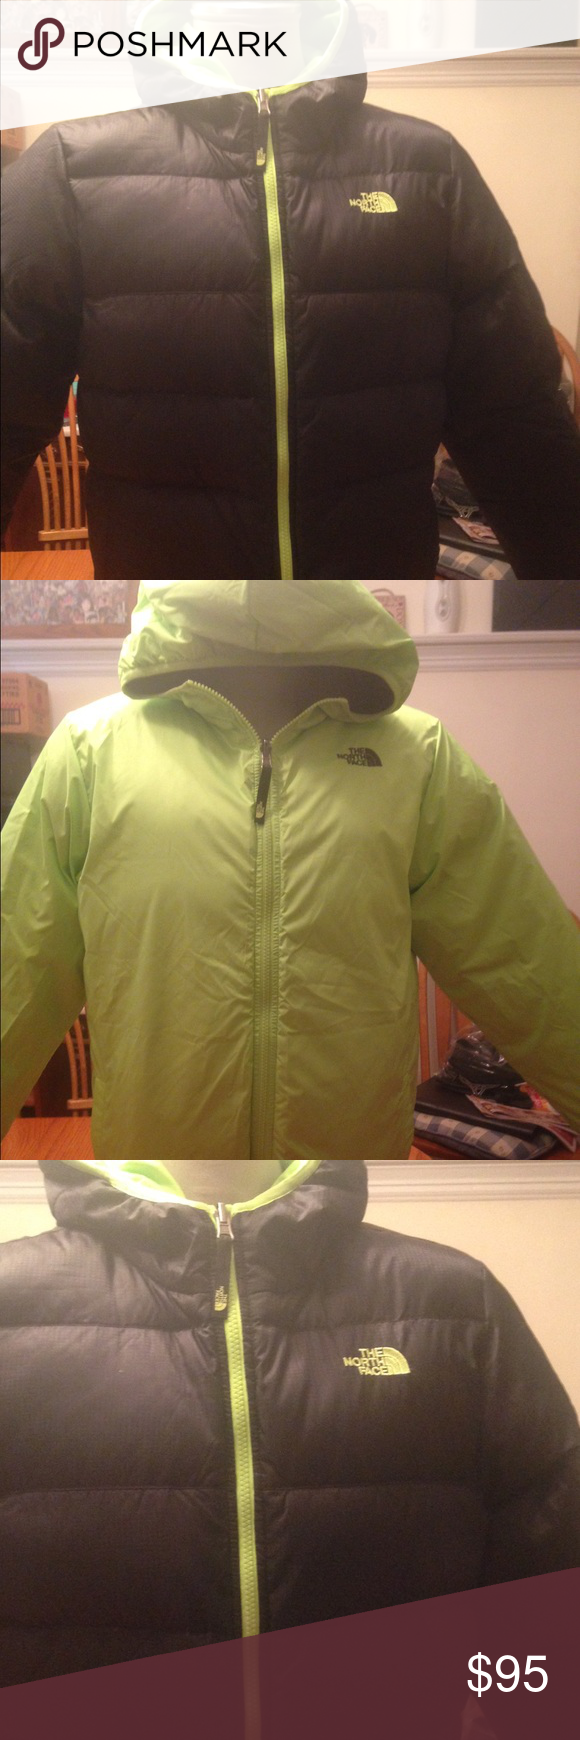 Black And Lime Green Reversible North Face Coat North Face Coat Clothes Design North Face Jacket [ 1740 x 580 Pixel ]